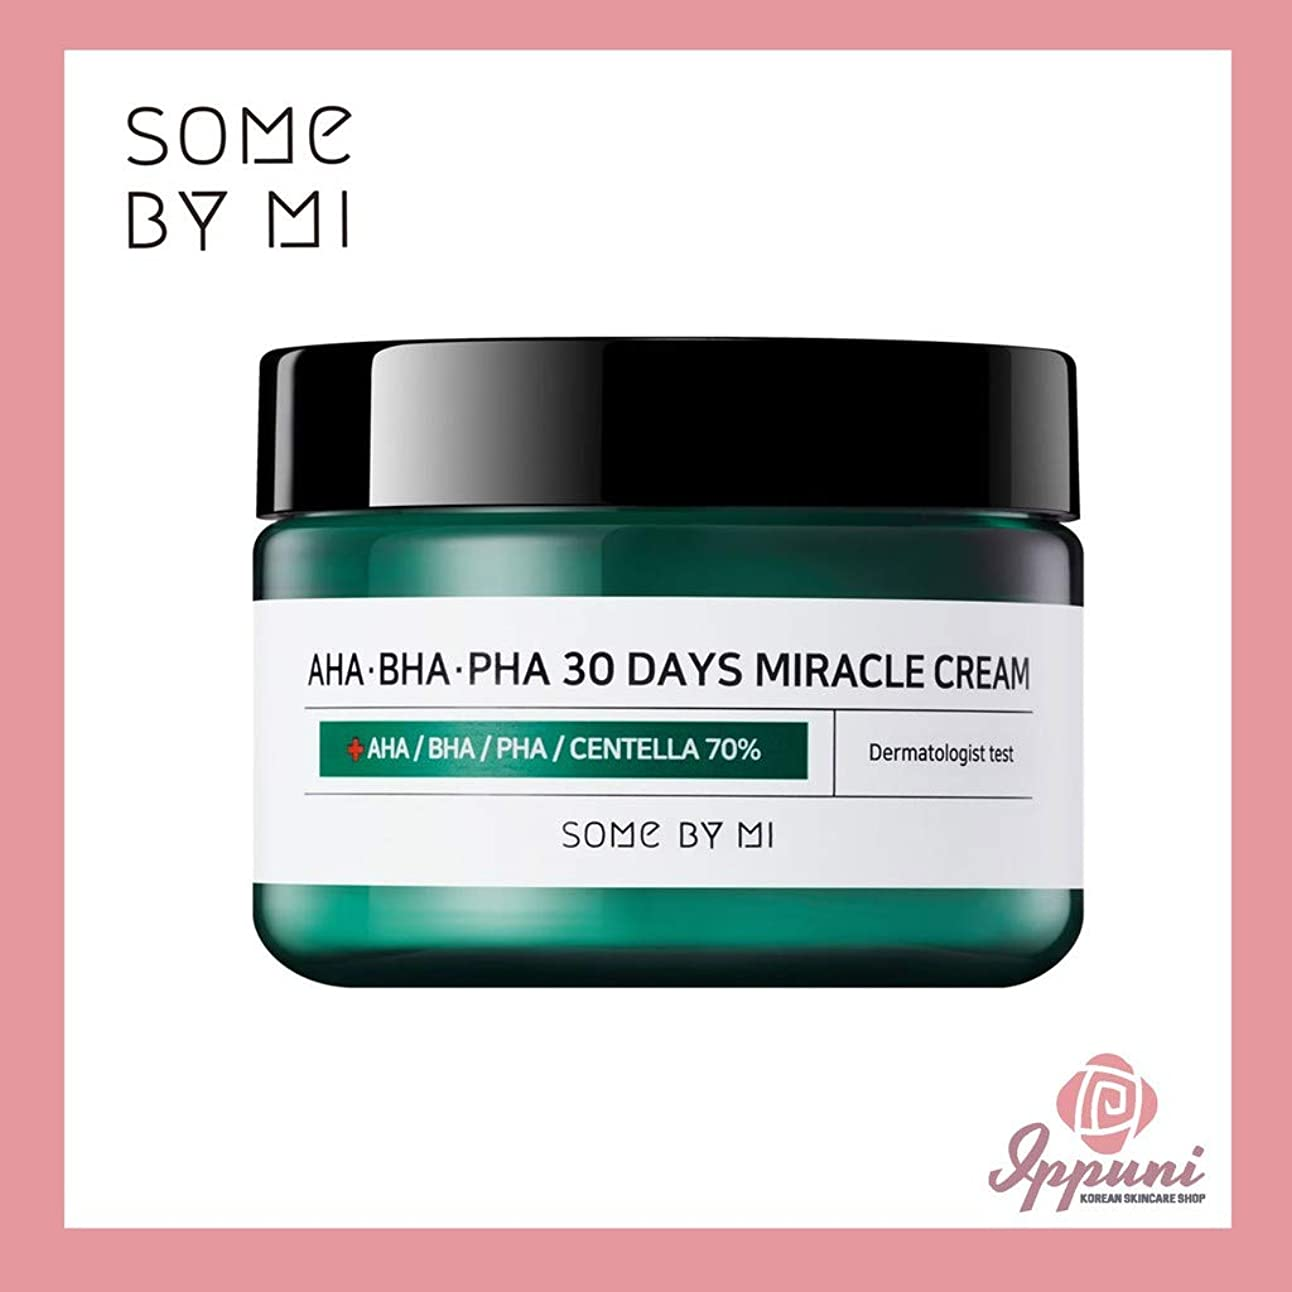 に賛成ニックネーム永遠のSomebymi AHA BHA PHA Miracle Cream 50ml (1.7oz) Skin Barrier & Recovery, Soothing with Tea Tree 10,000ppm for Wrinkle & Whitening/Korea Cosmetic [並行輸入品]